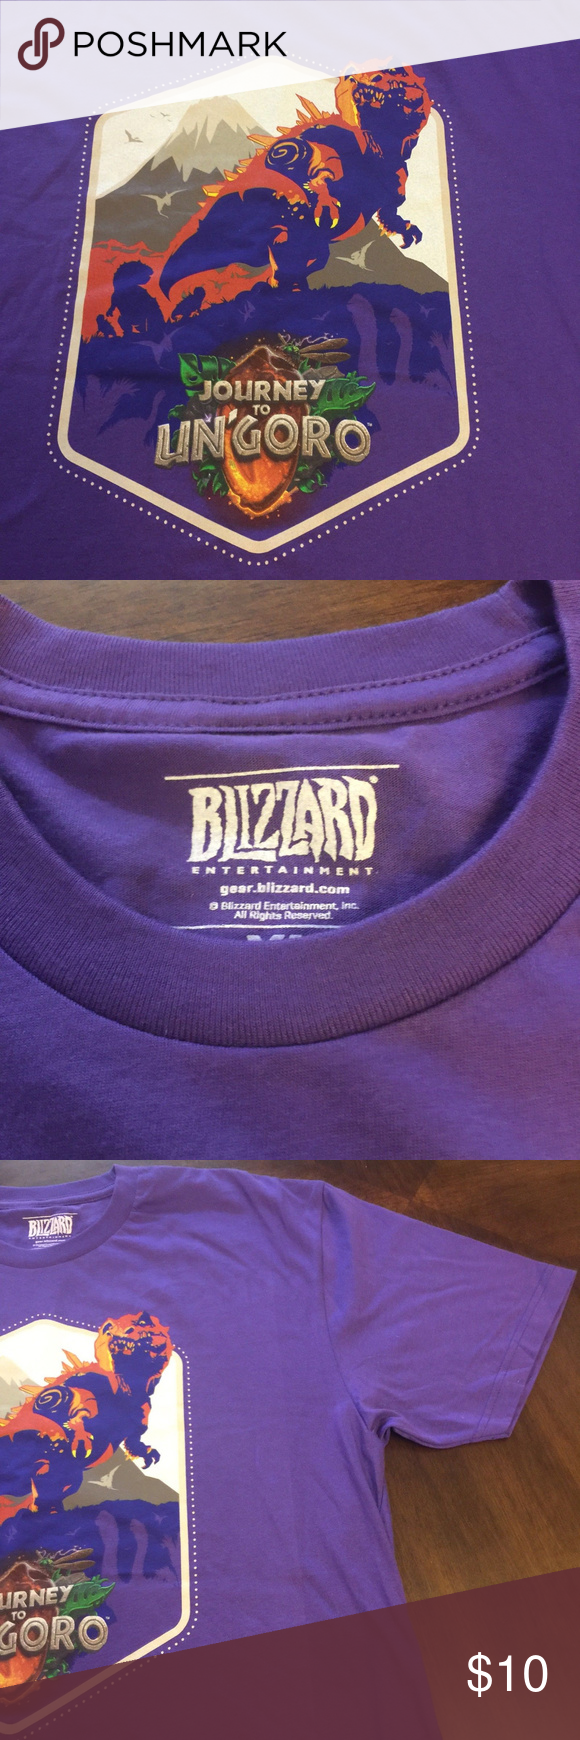 c0440ade7 Blizzard Hearthstone Journey to Un'Goror T-Shirt X Unusual Blizzard Journey  to Un'Goro shirt with super dinosaur graphic Purple shirt. large art on the  ...